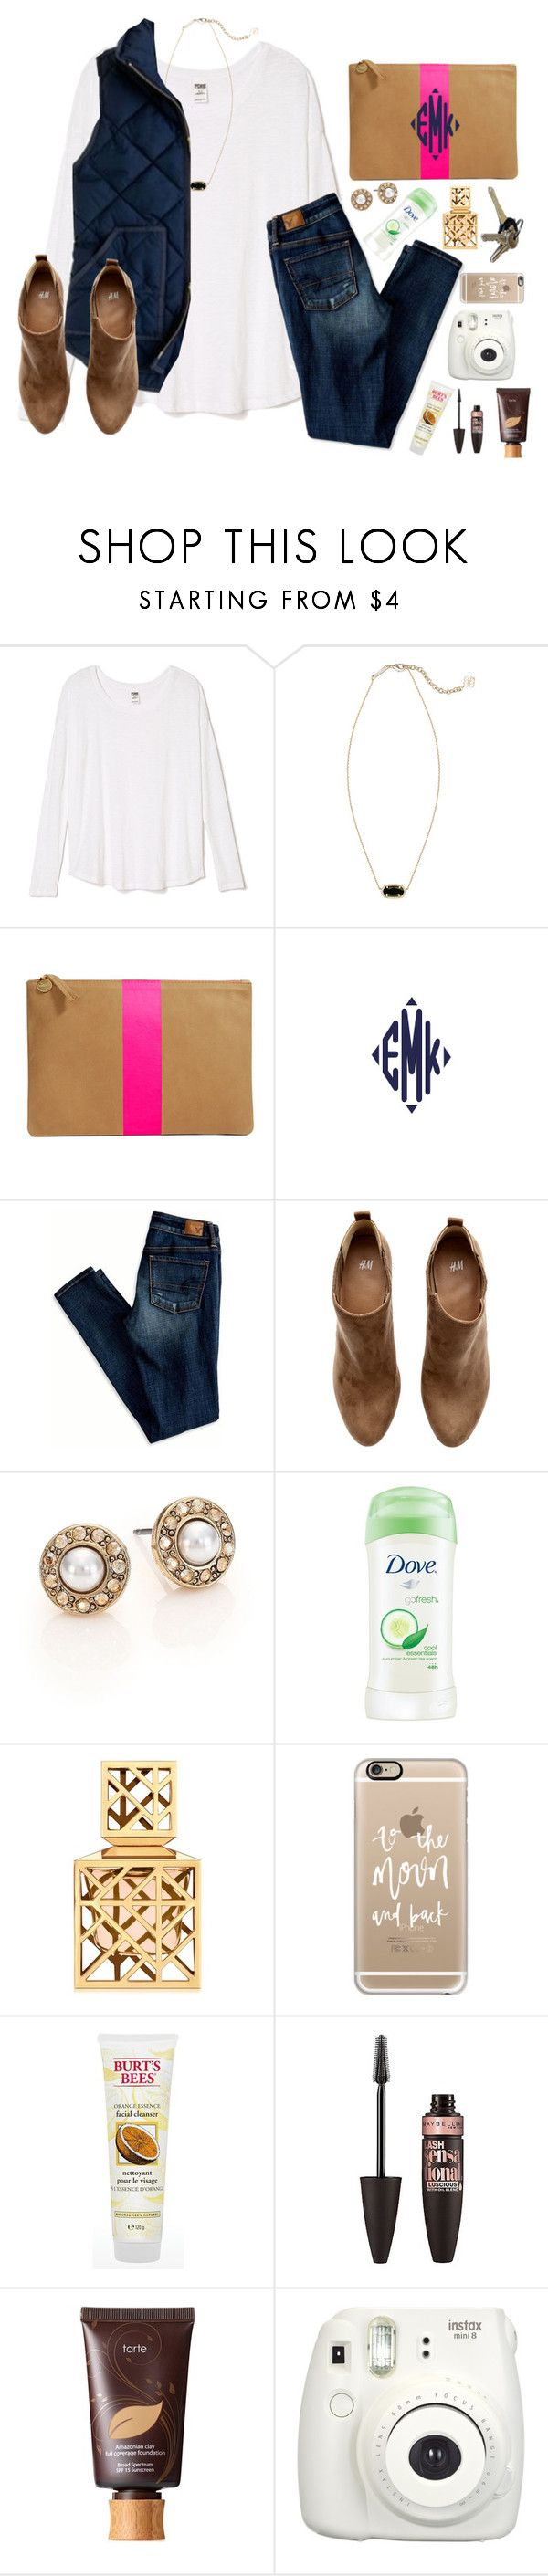 """You took a Polaroid of us"" by lydia-hh ❤ liked on Polyvore featuring Kendra Scott, Clare V., J.Crew, American Eagle Outfitters, H&M, Oscar de la Renta, Dove, Tory Burch, Avon and Casetify"